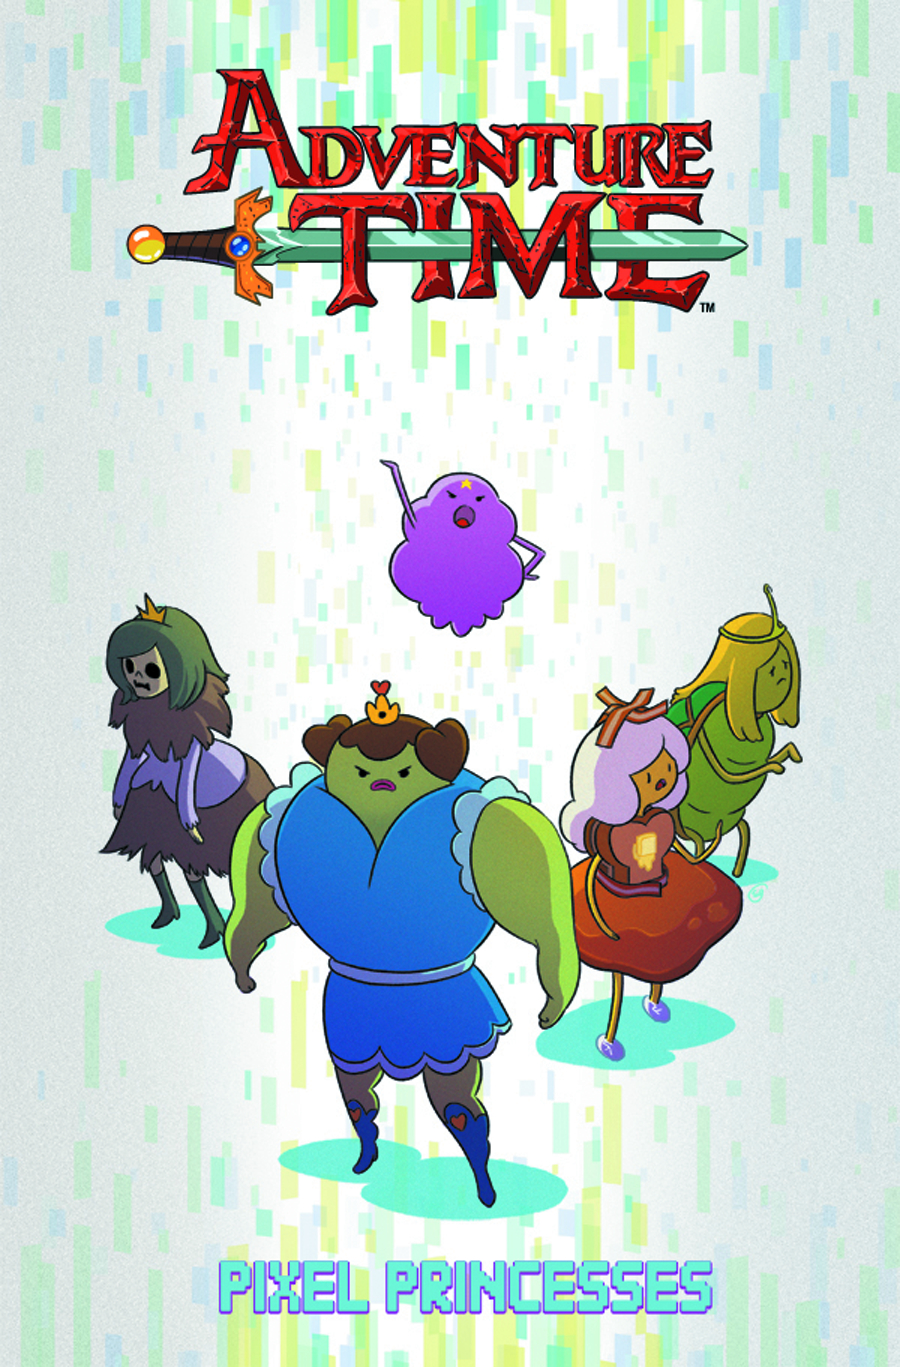 ADVENTURE TIME ORIGINAL GN VOL 02 PIXEL PRINCESSES